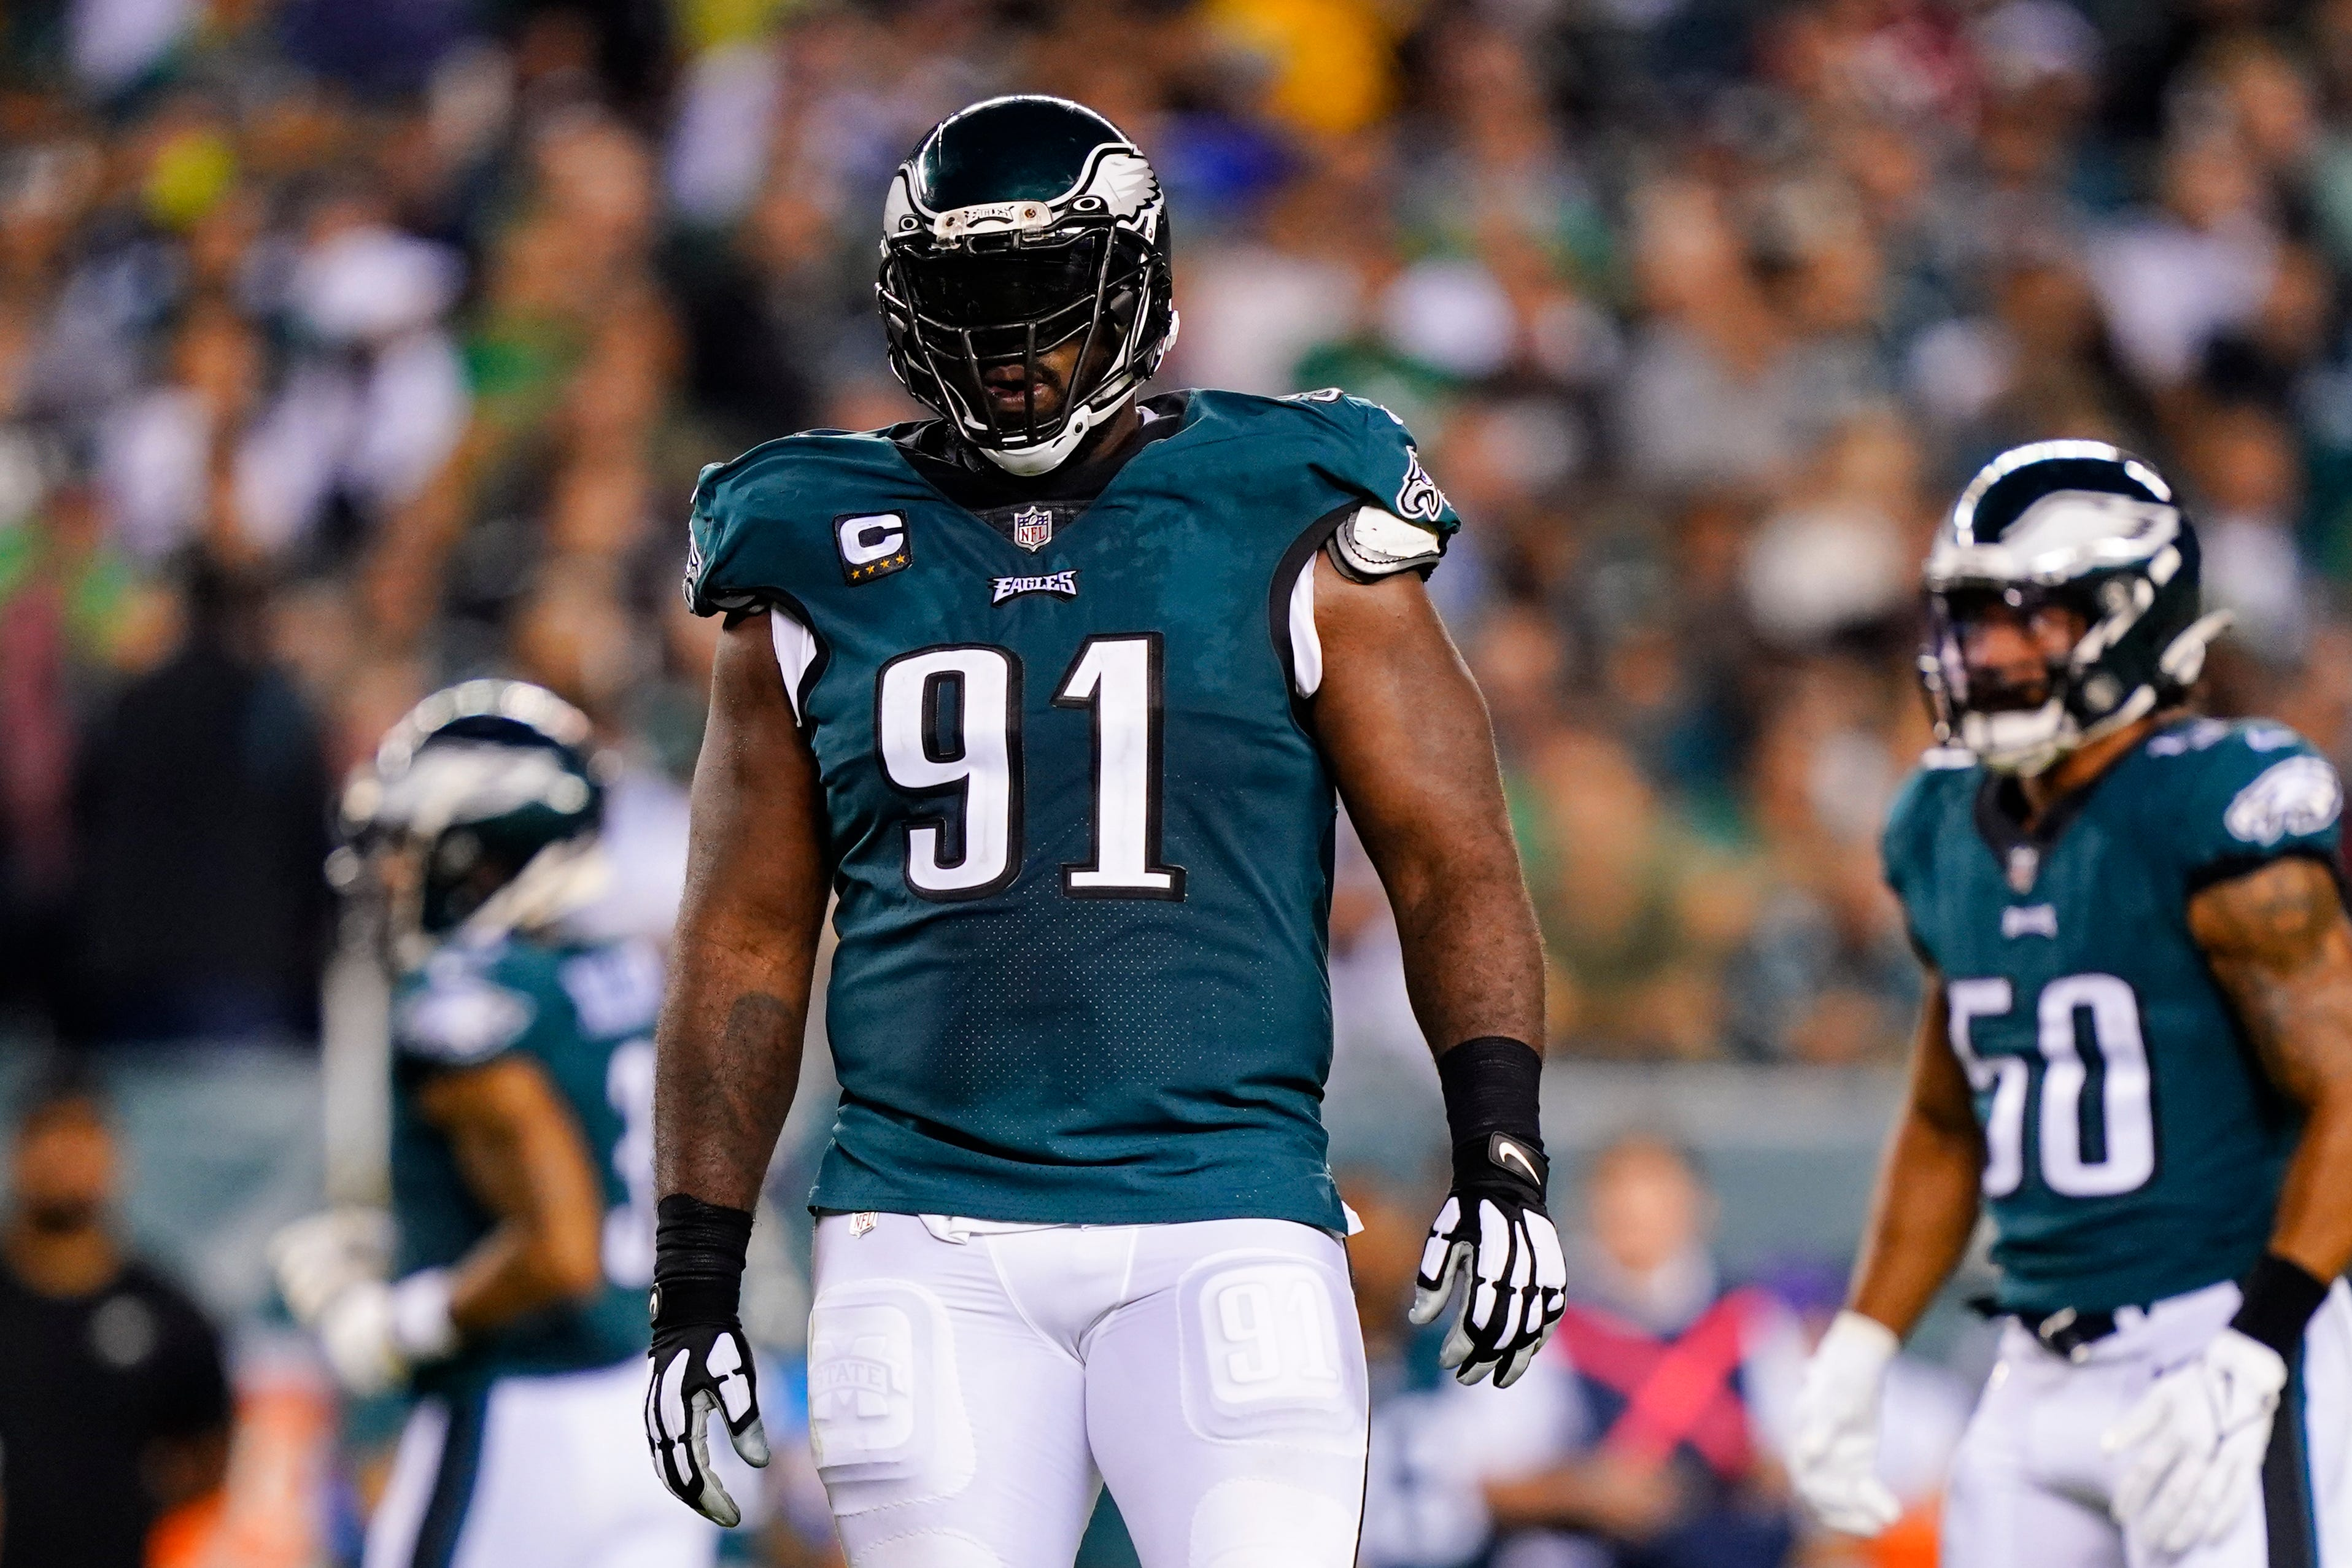 Fletcher Cox is furious at Eagles defensive coordinator; could Jonathan Gannon's job be in jeopardy?